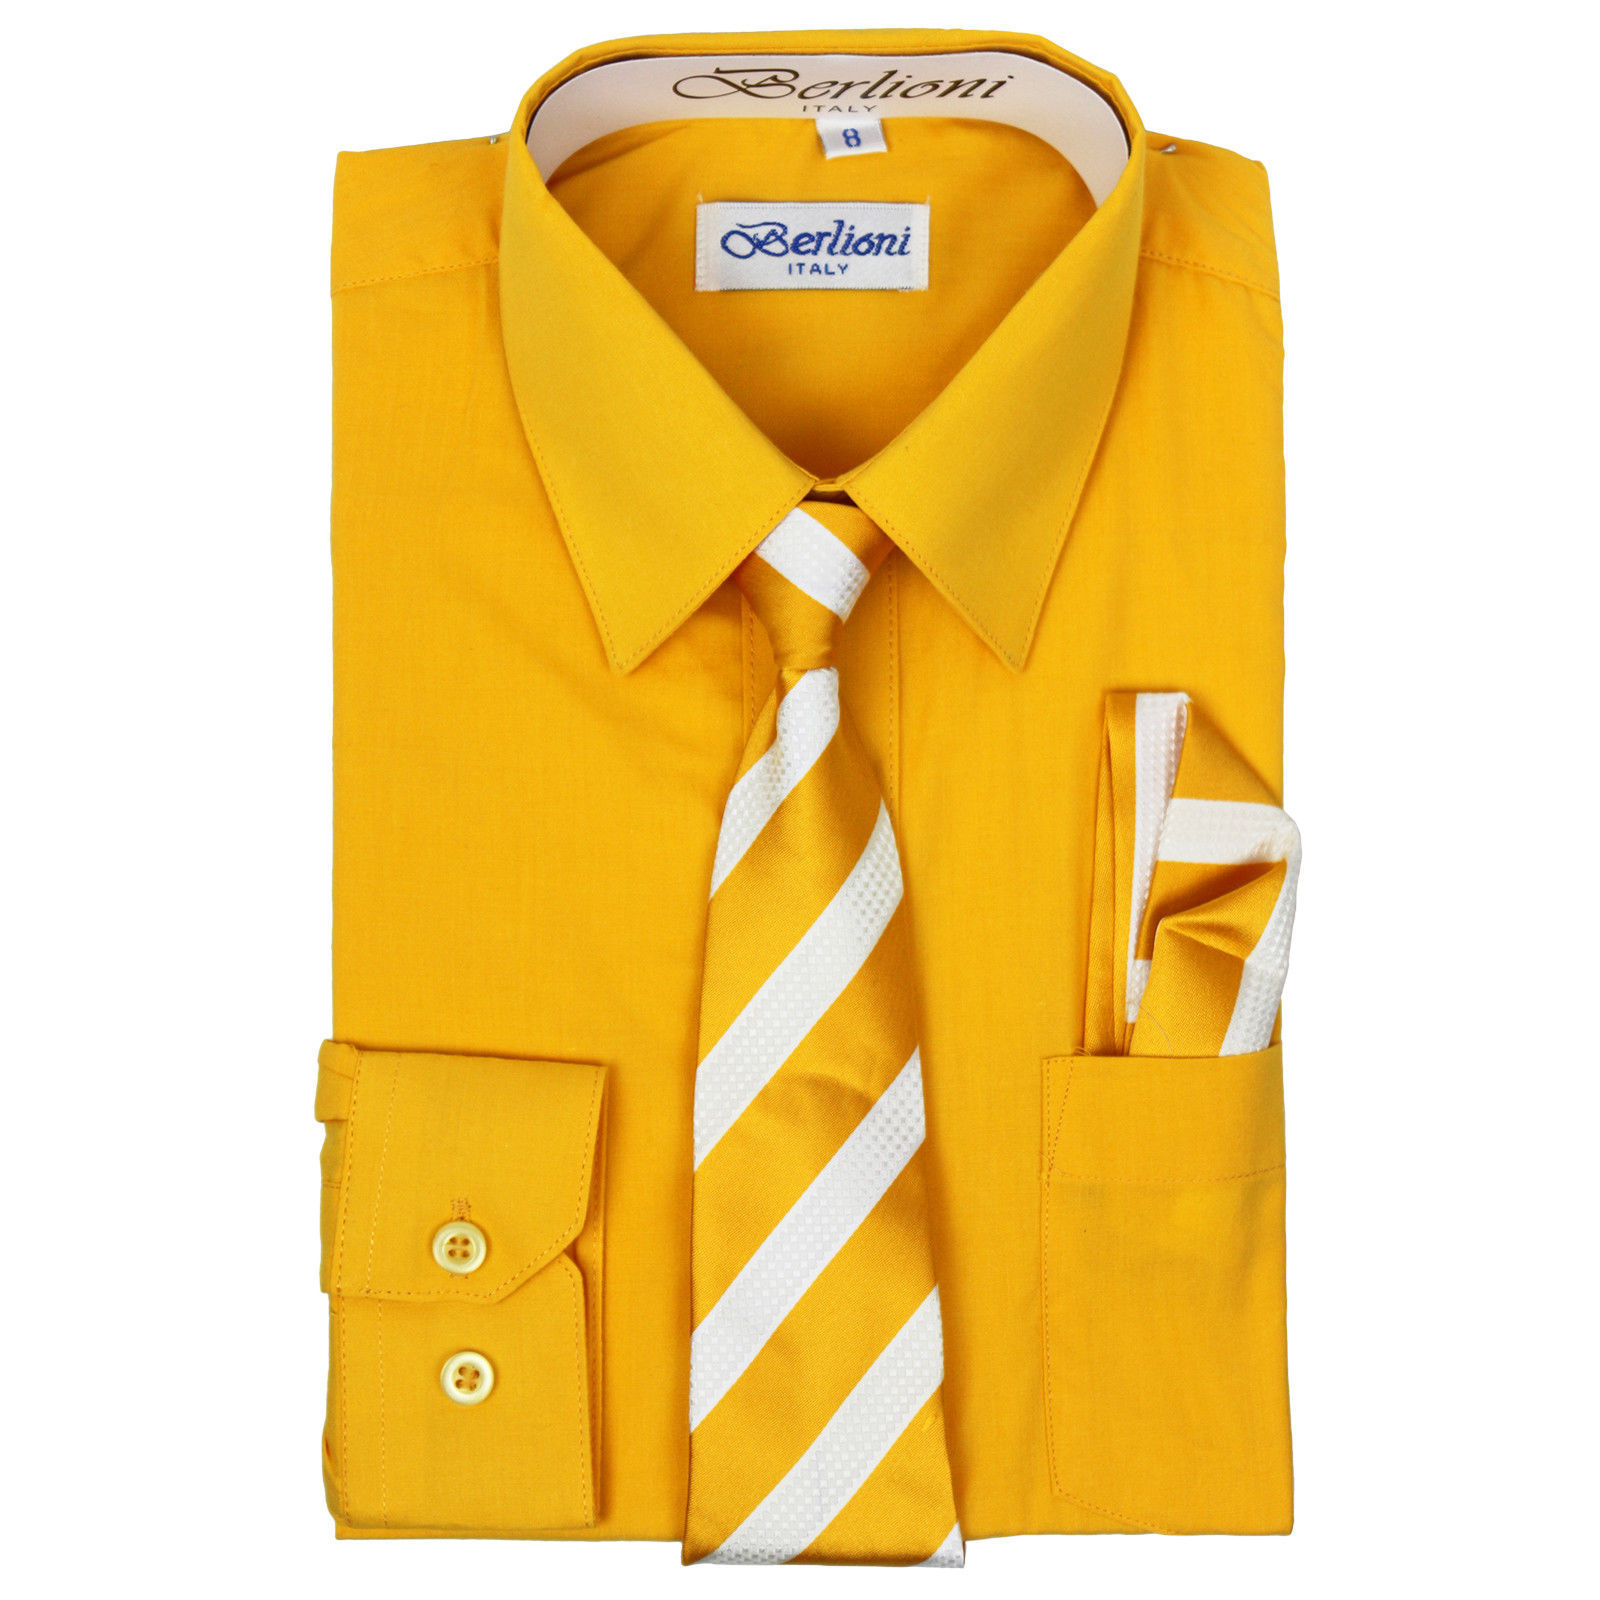 Berlioni Italy Toddlers Kids Boys Long Sleeve Dress Shirt Set With Tie GOLD SZ 8